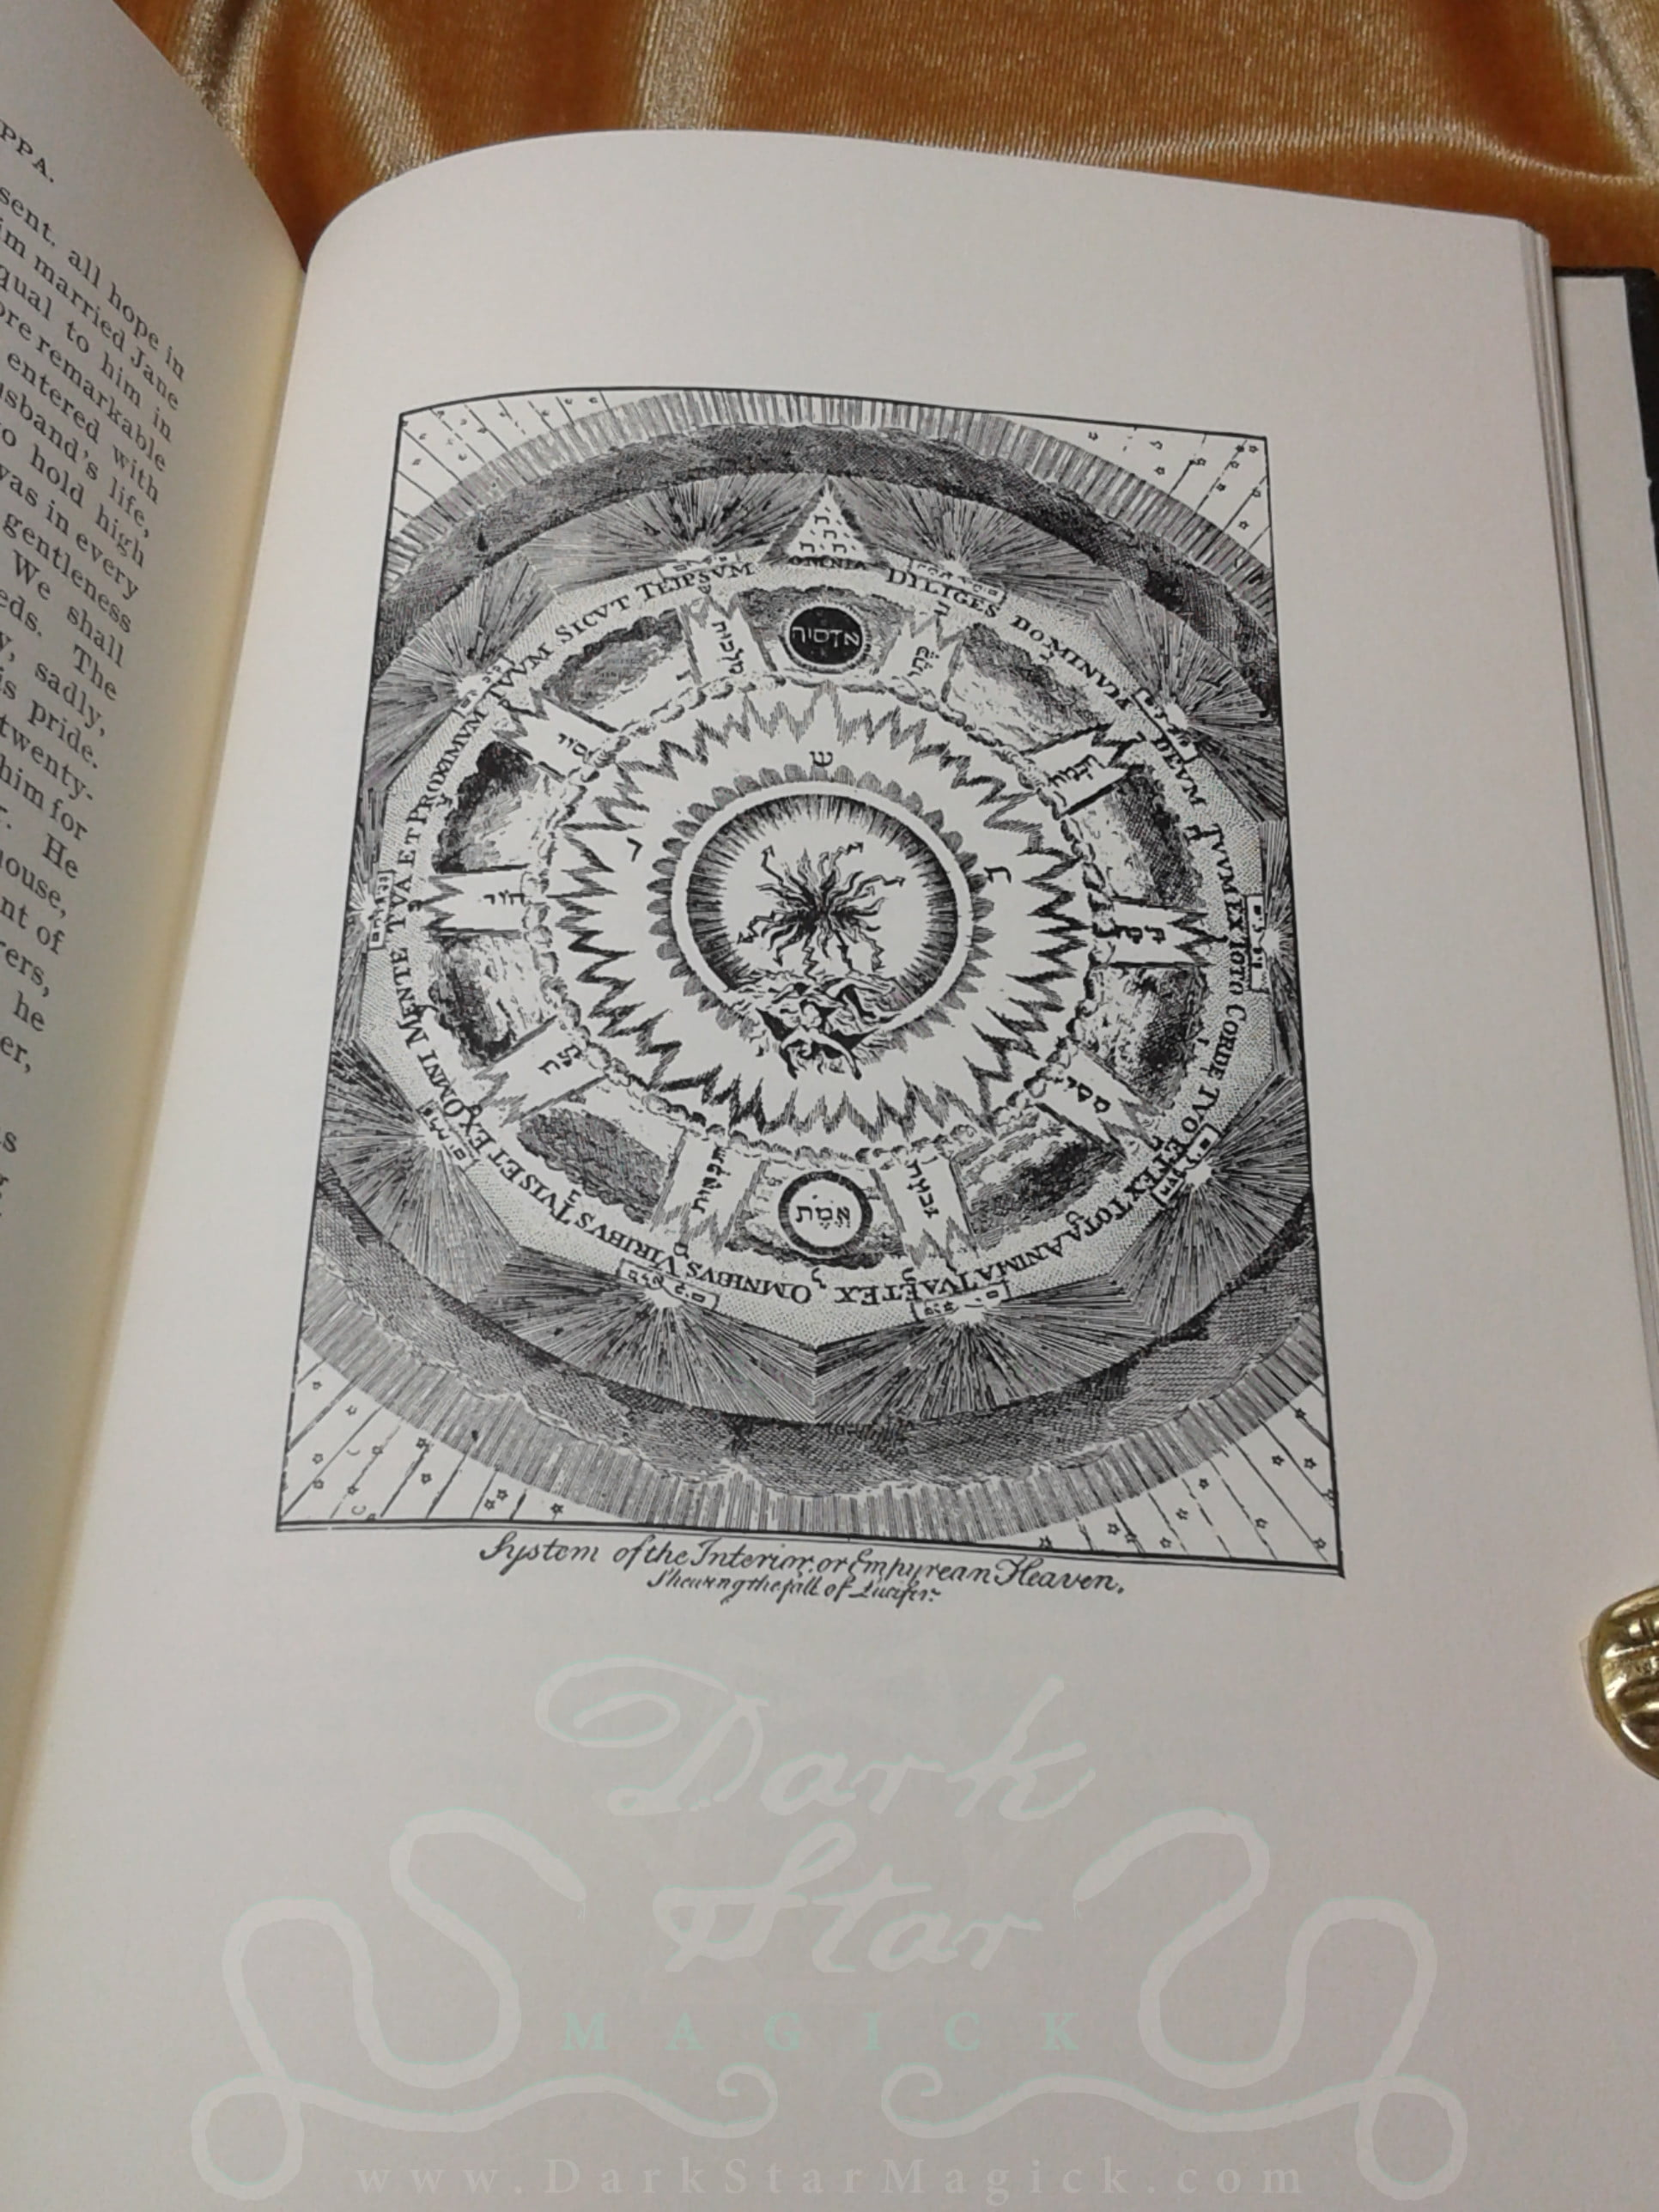 Three Books on Occult Philosophy or Magic : Book One - Natural Magic (1973)